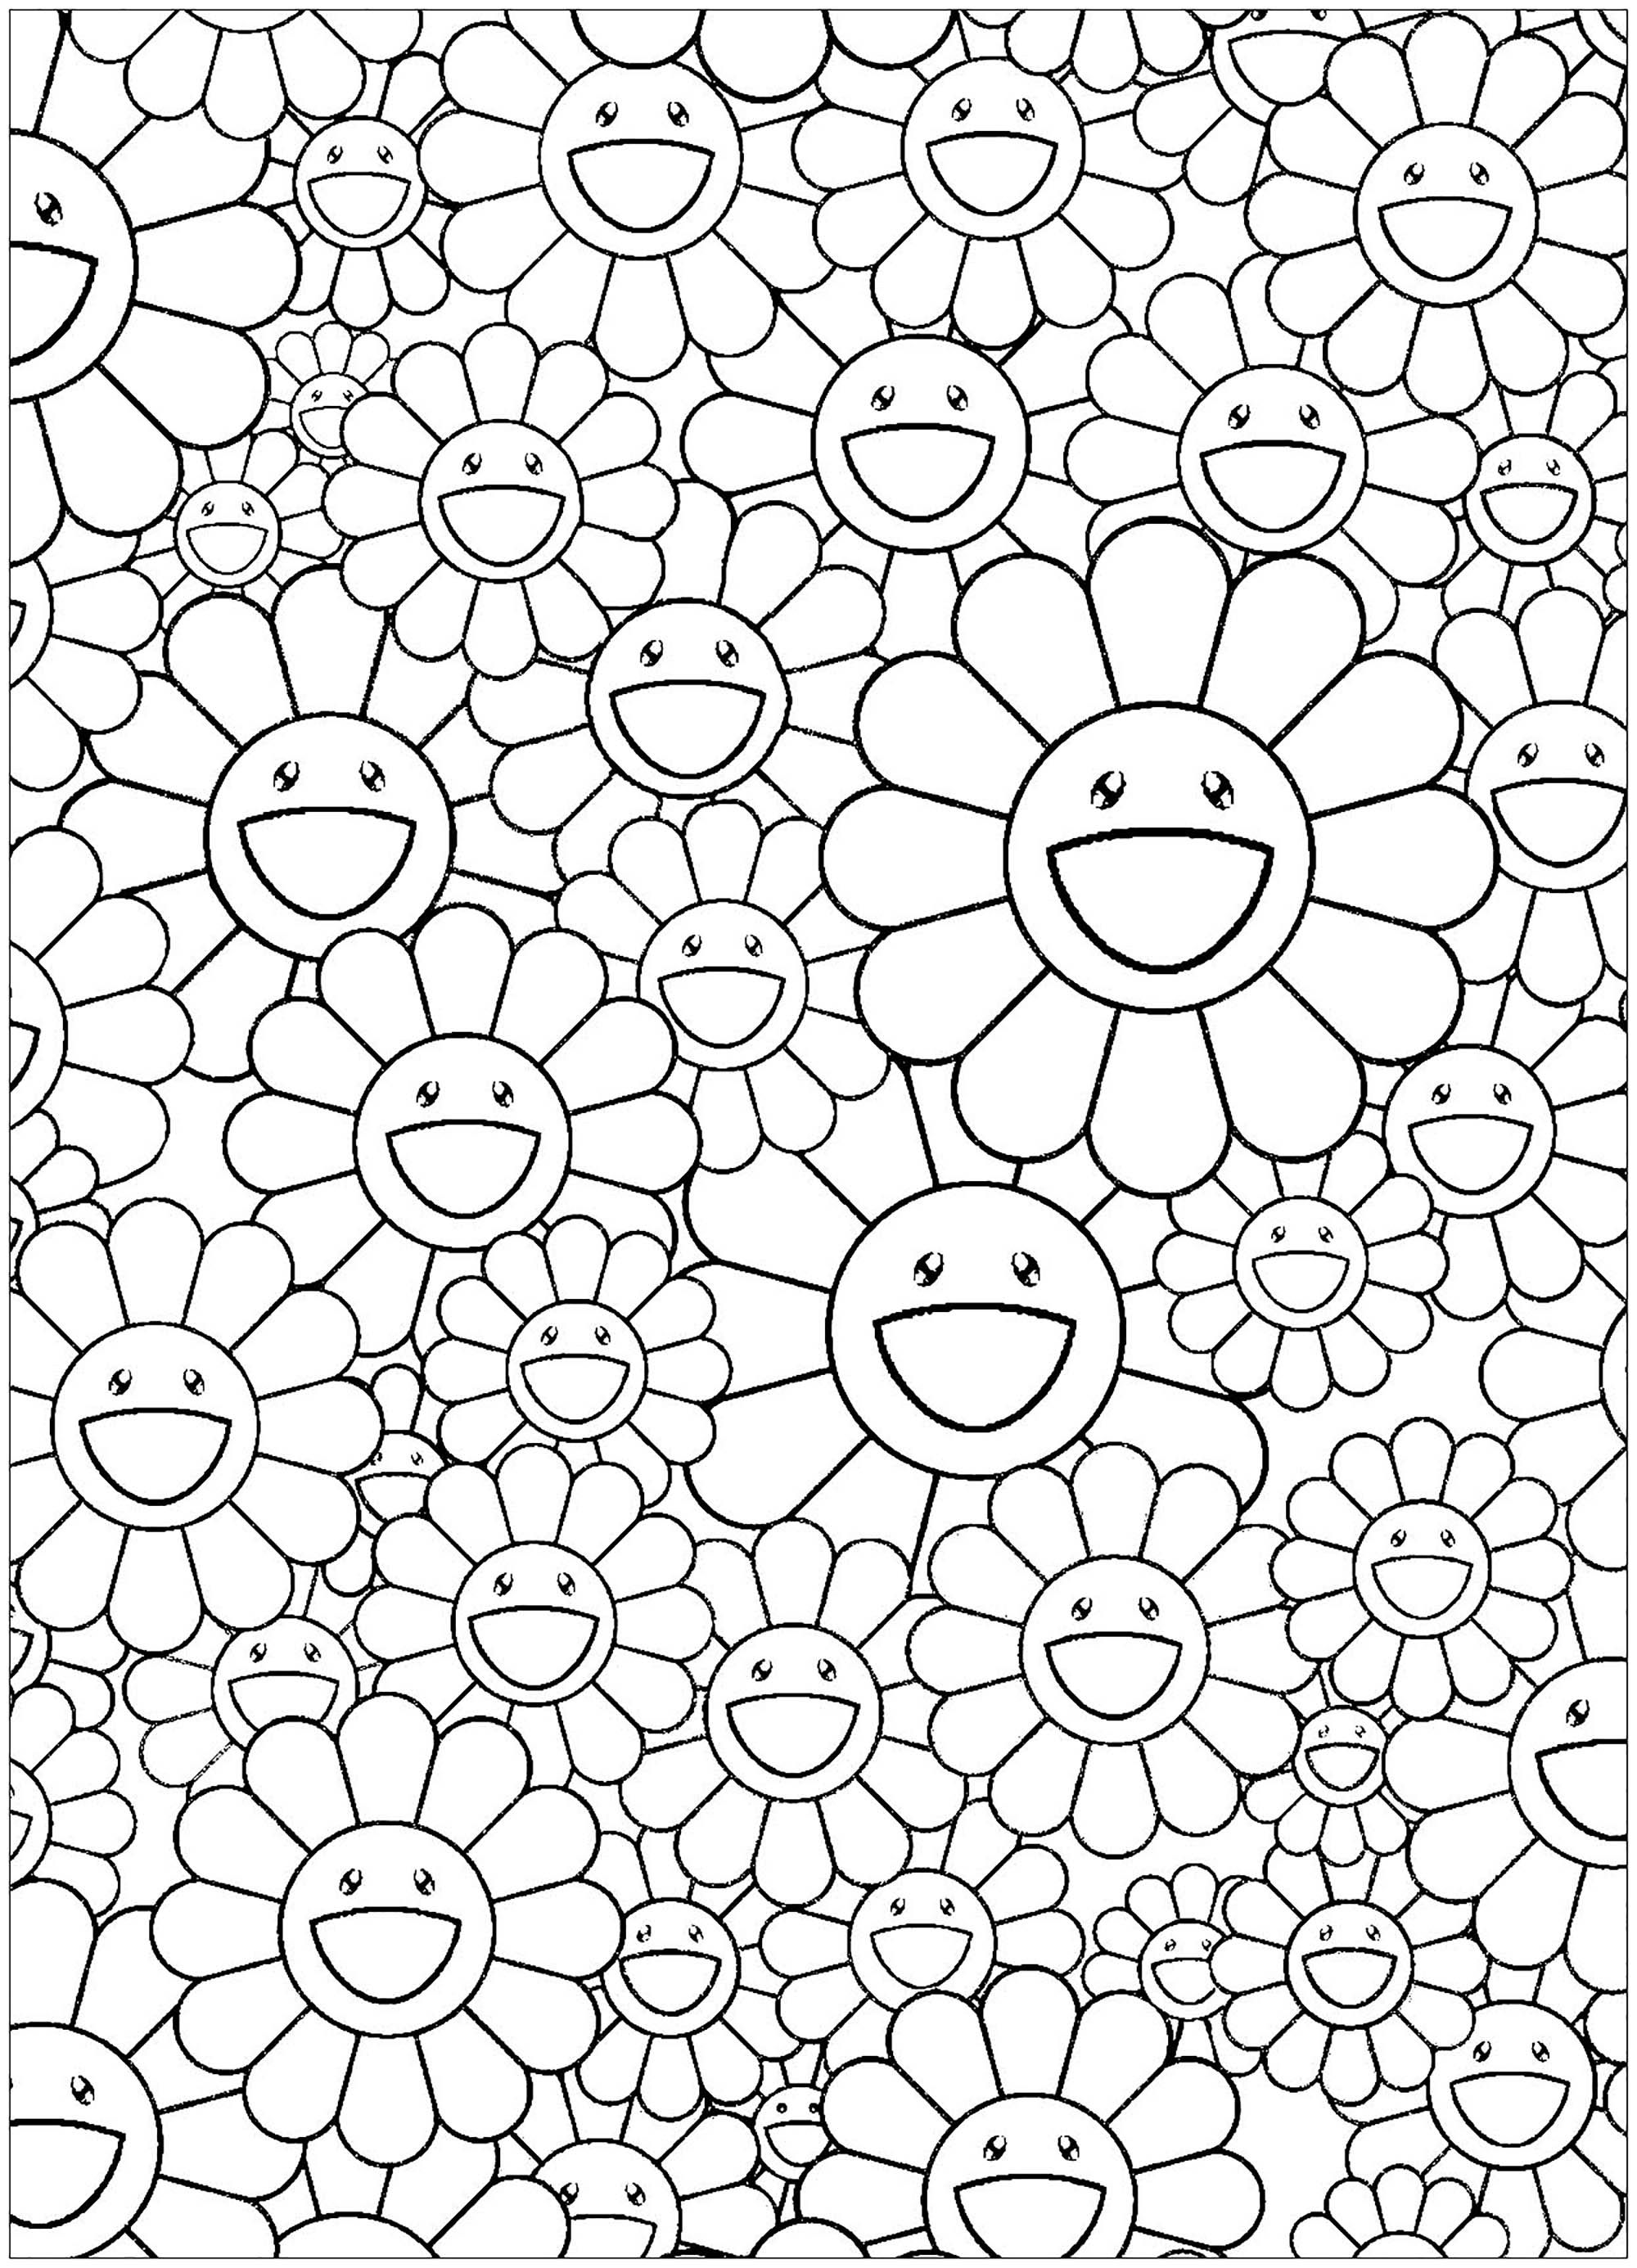 Coloring Page Inspired By A Work By Japanese Artist